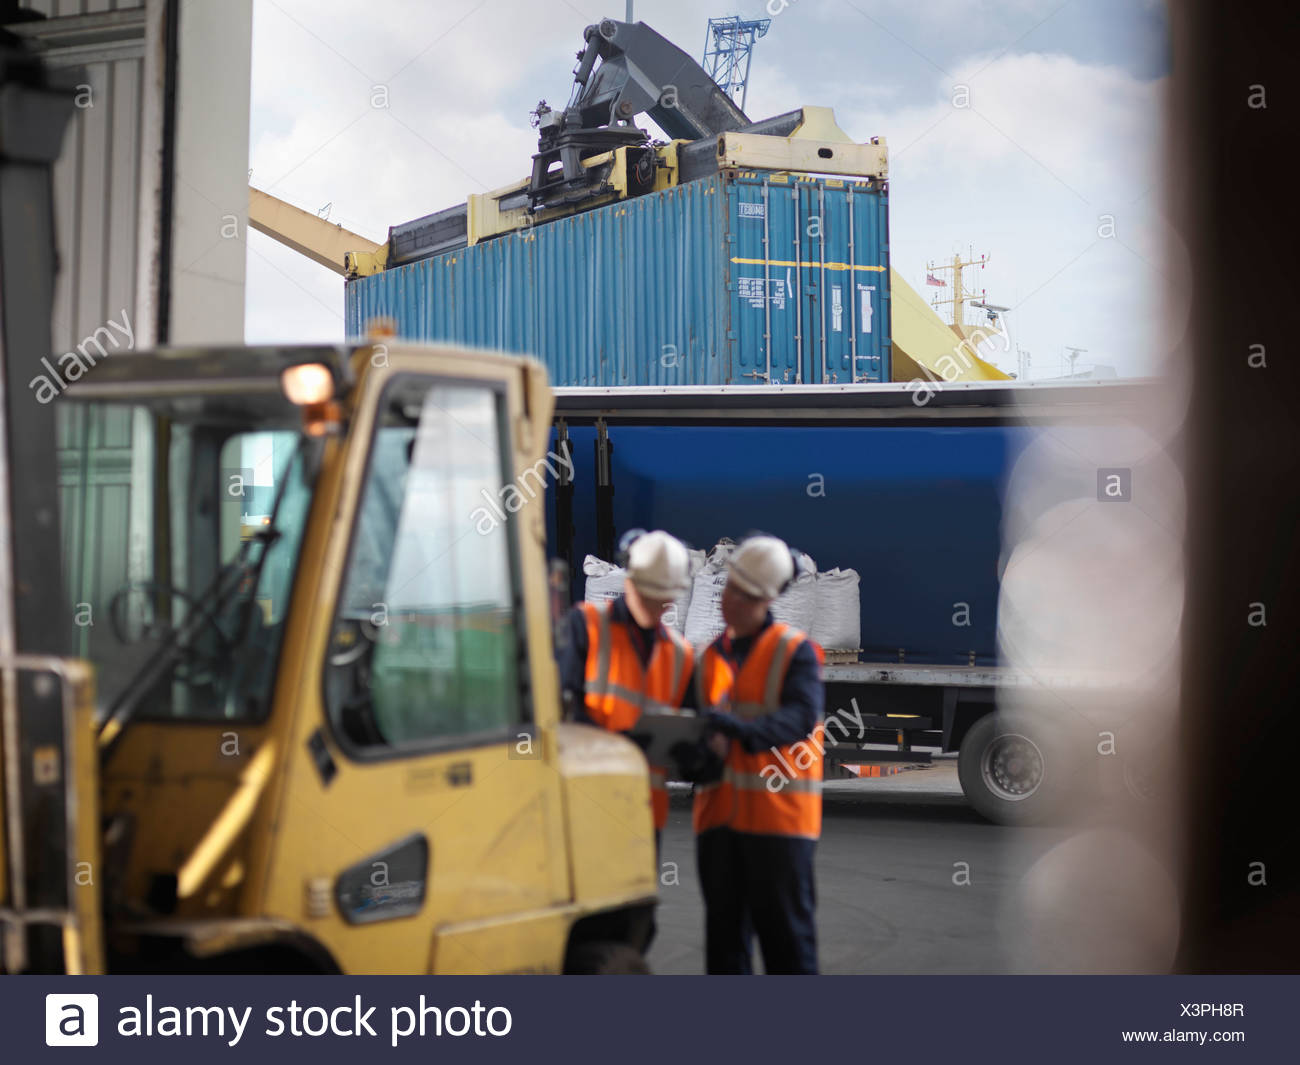 Port Workers With Shipping Container - Stock Image